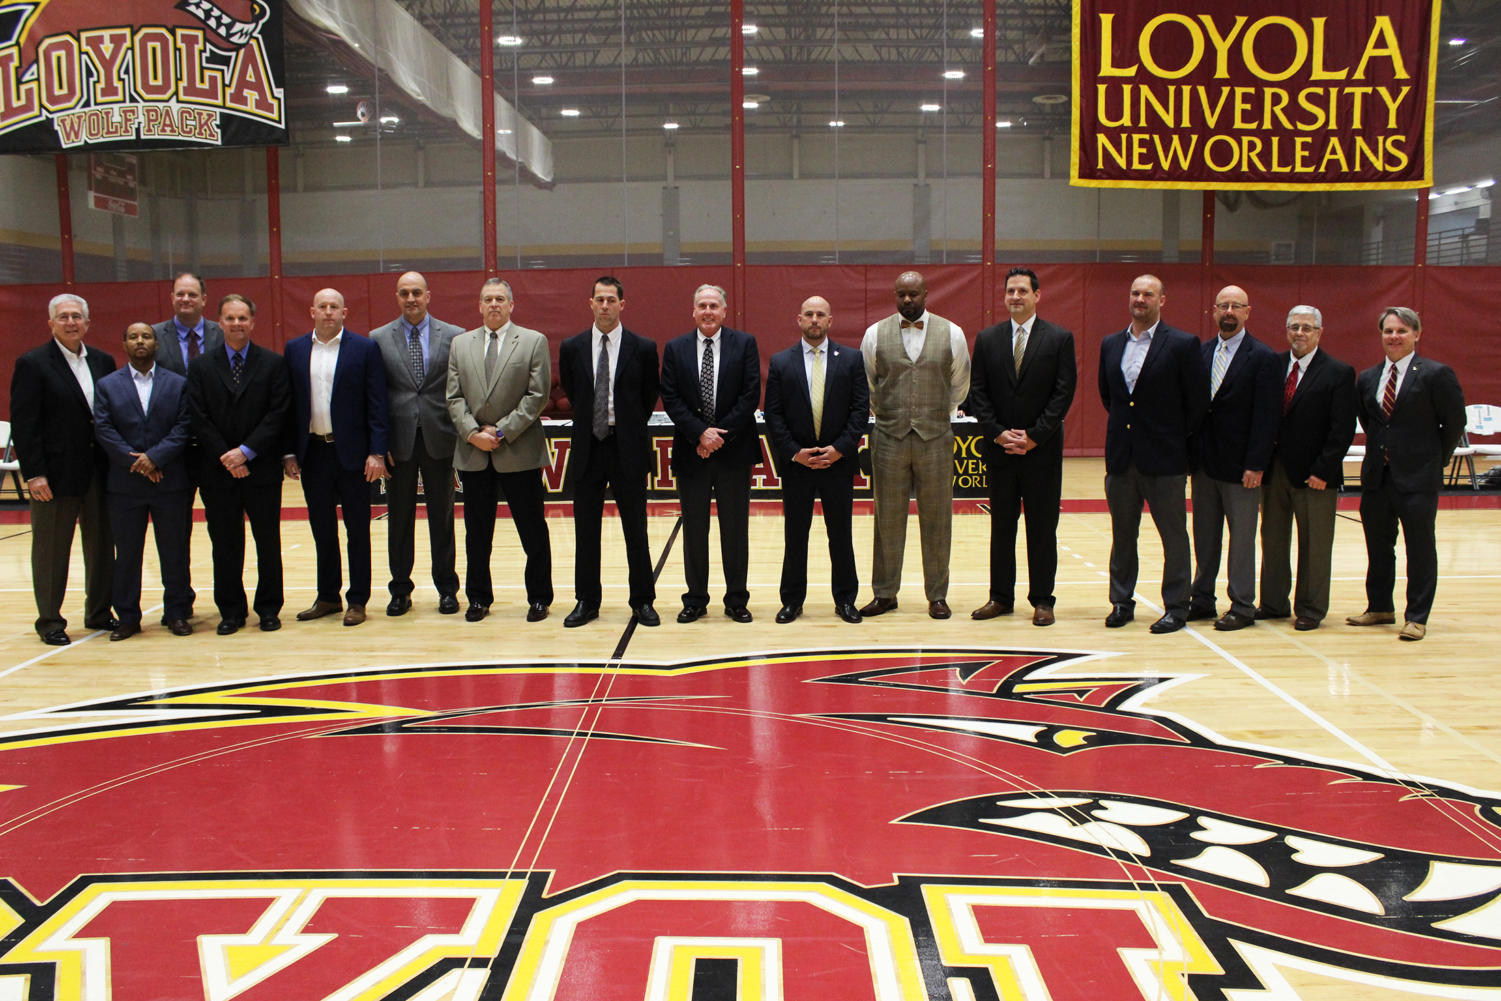 The+1994-1995+Loyola+men%27s+basketball+team+stands+center+court+as+they+are+honored+for+their+Hall+of+Fame+induction.+